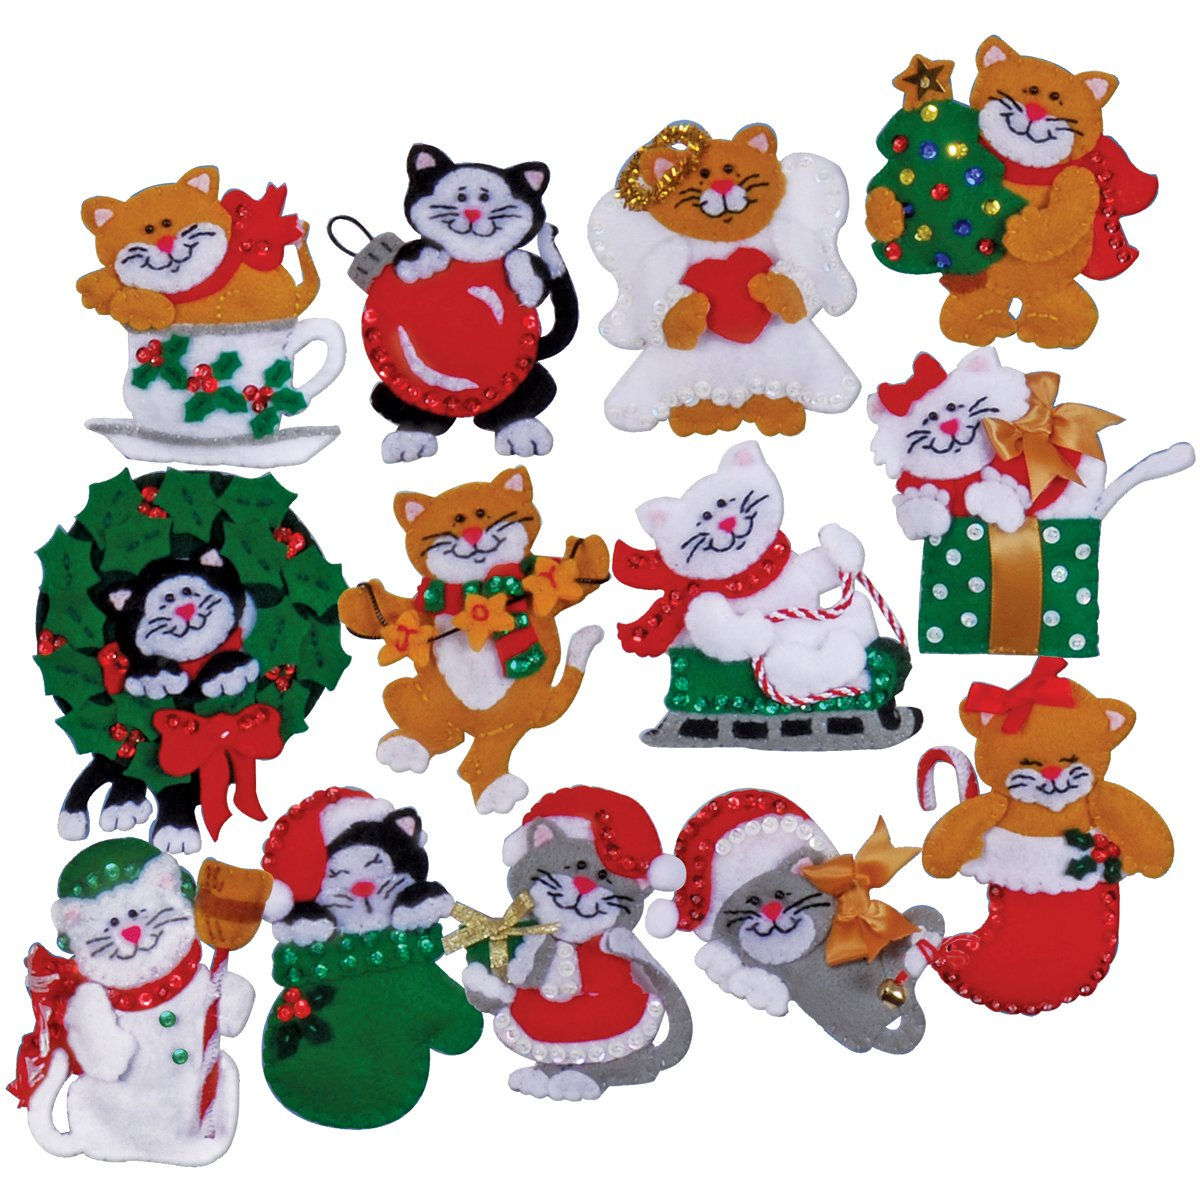 Tobin Lots of Kittens Ornaments Felt Applique Kit, 3 by 4-Inch, Set of 13 xinqite home furnishing ornaments product suspension globe round 3 inch 85mm blue english version of the spot